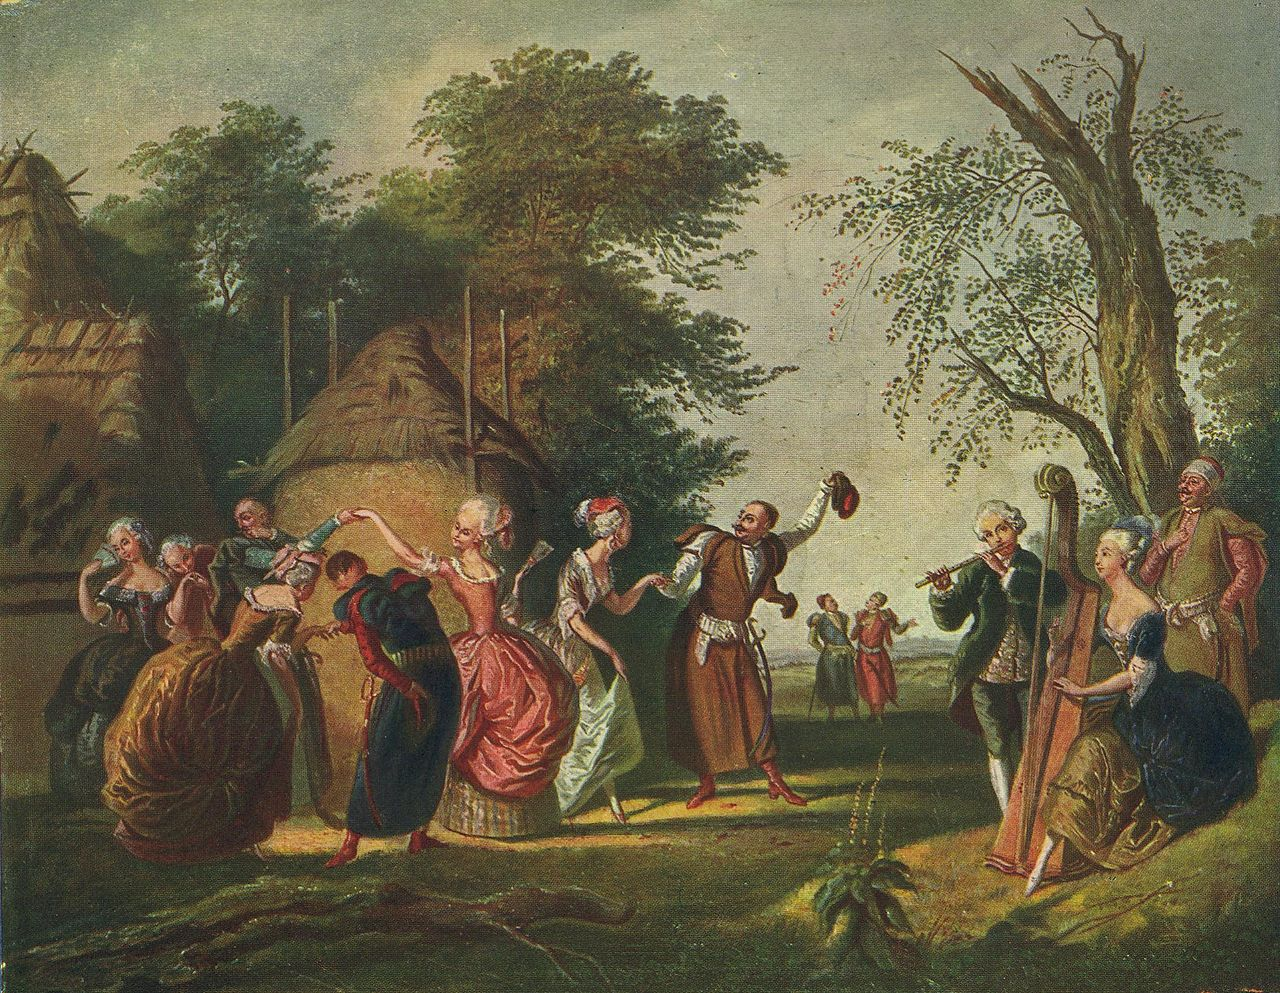 Polish nobility dancing Polonaise in the open on a painting by This 19th century painting by Korneli Szlegel, Source: Wikimedia/CC